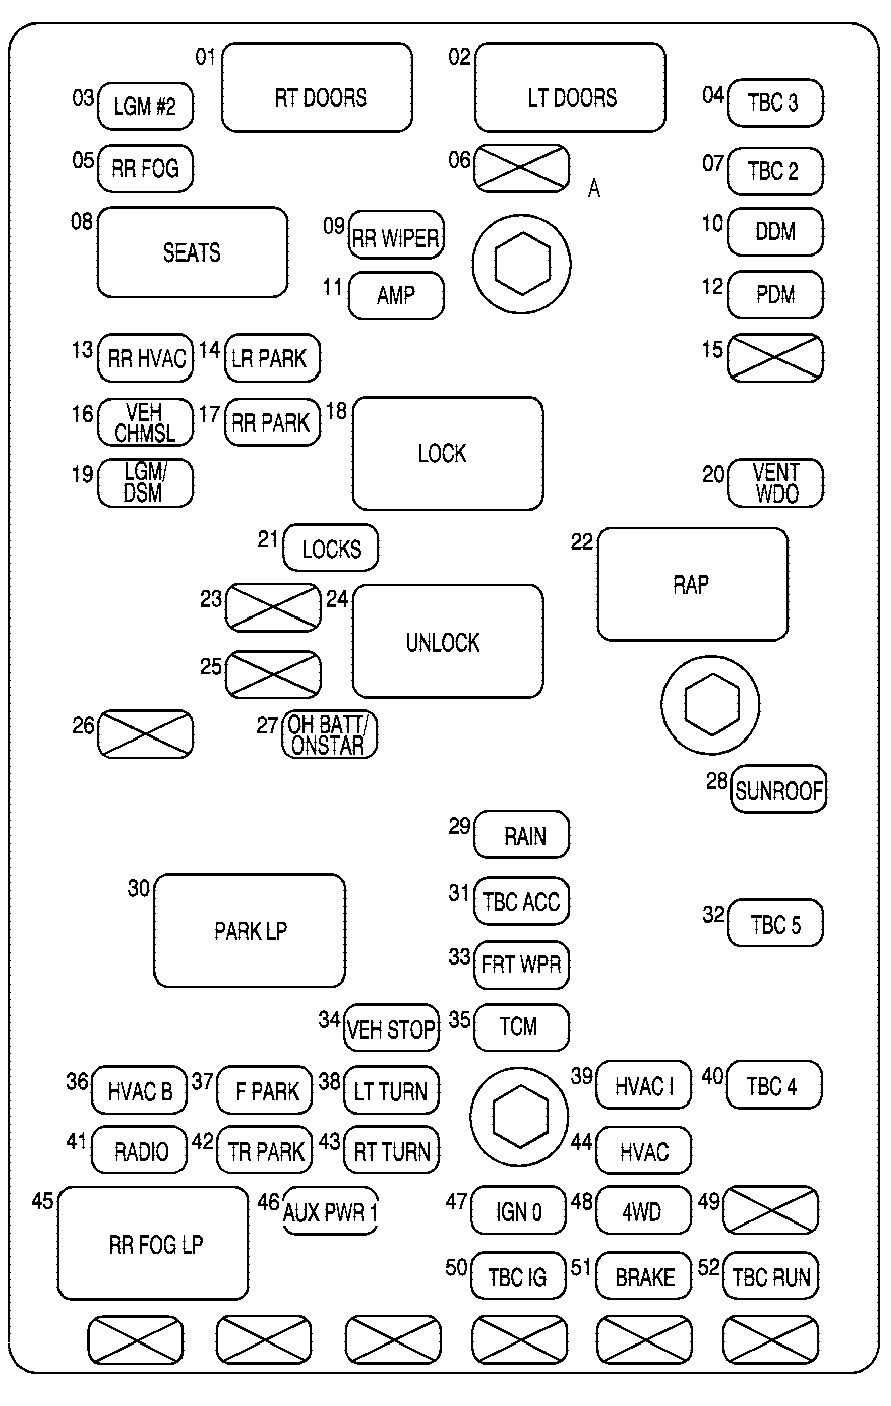 medium resolution of 2002 gmc envoy fuse diagram wiring diagram expert fuse box diagram for 2002 gmc envoy